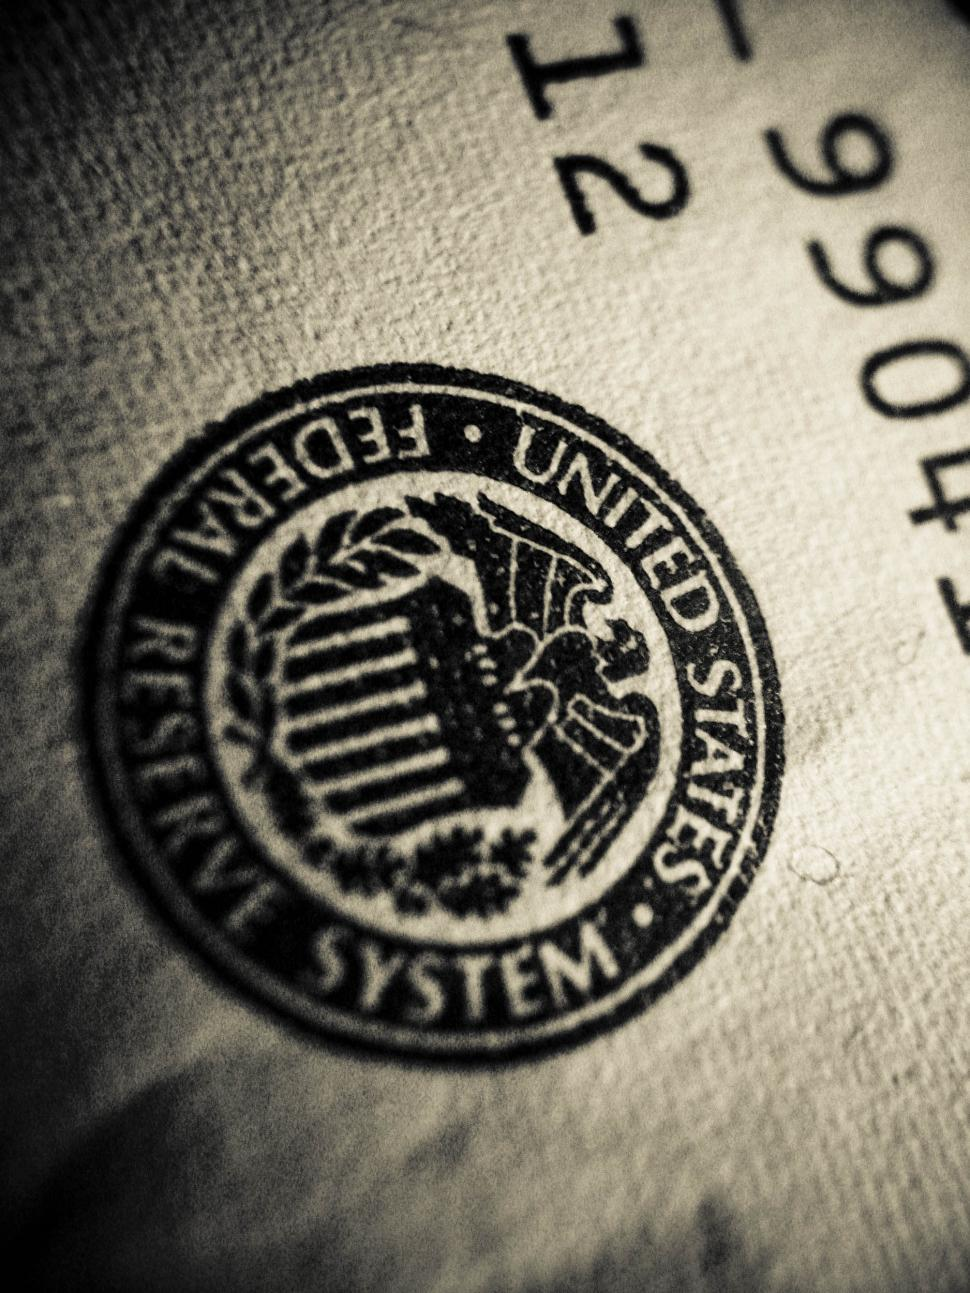 Download Free Stock HD Photo of US federal seal Online